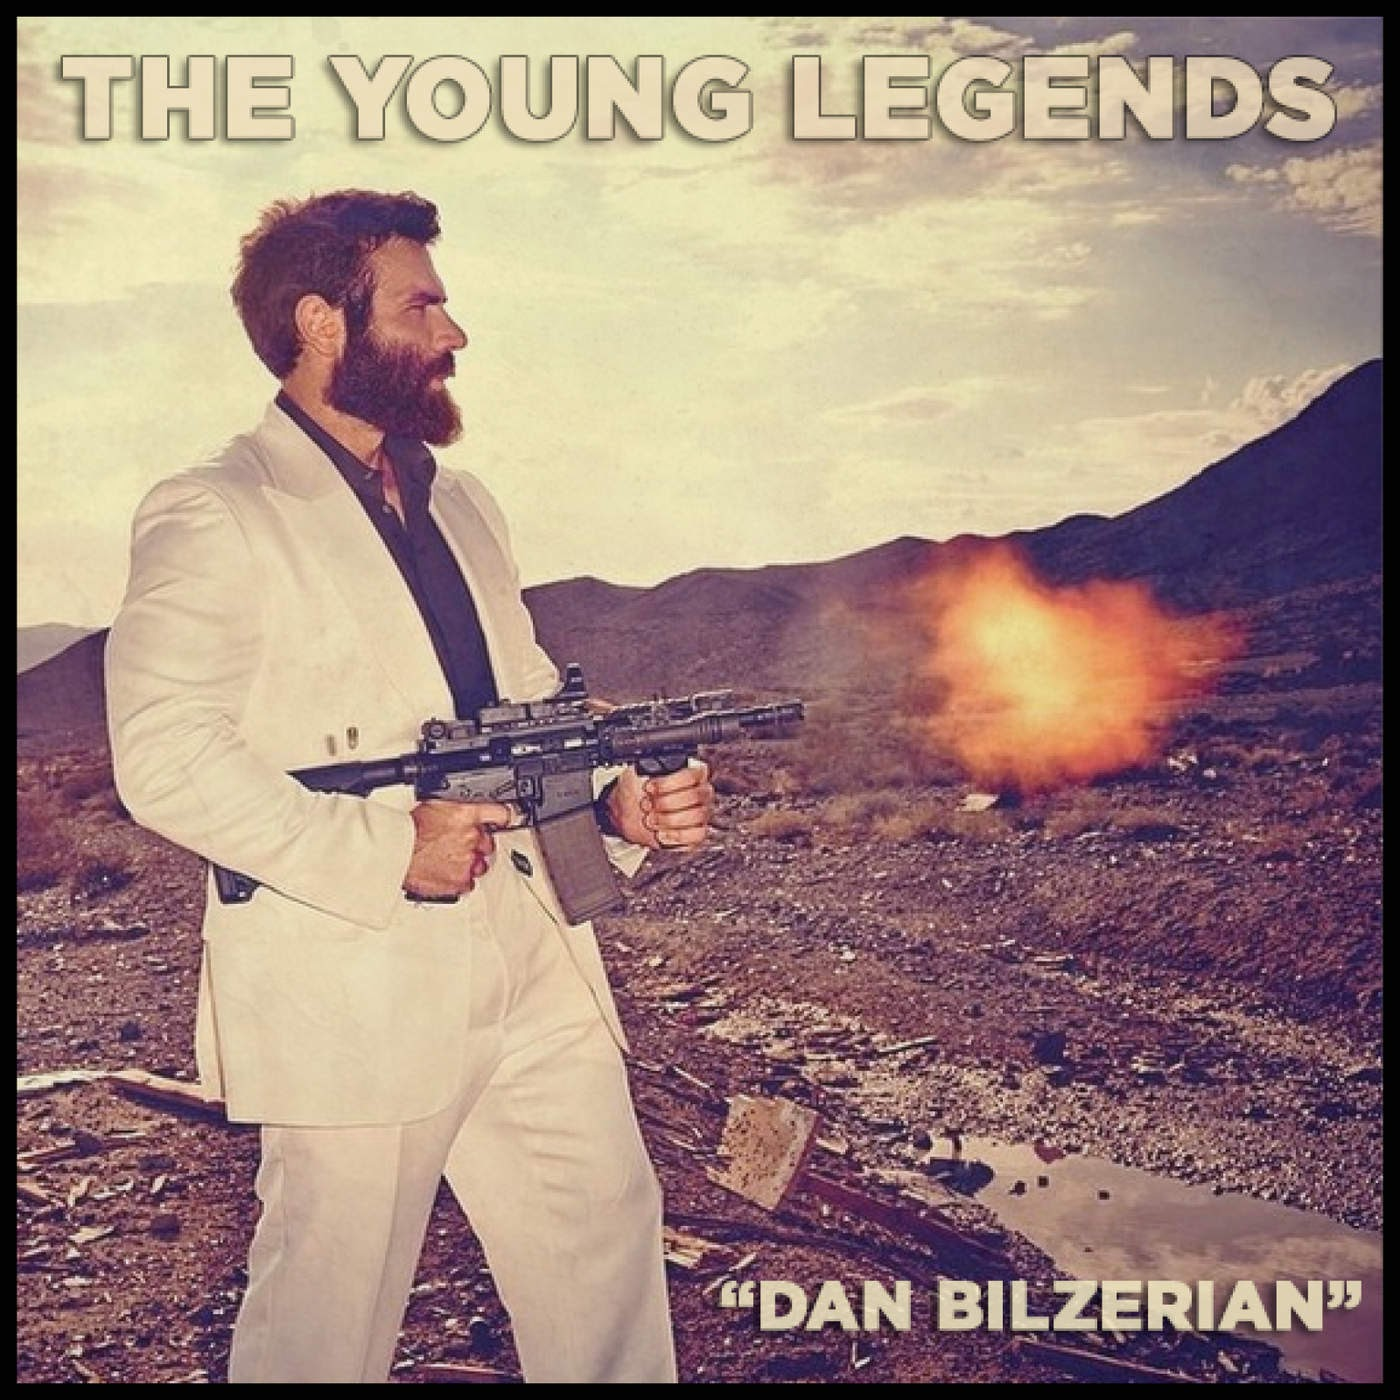 The Young Legends - Dan Bilzerian (feat. Hot Rod & Slippe) - Single Cover